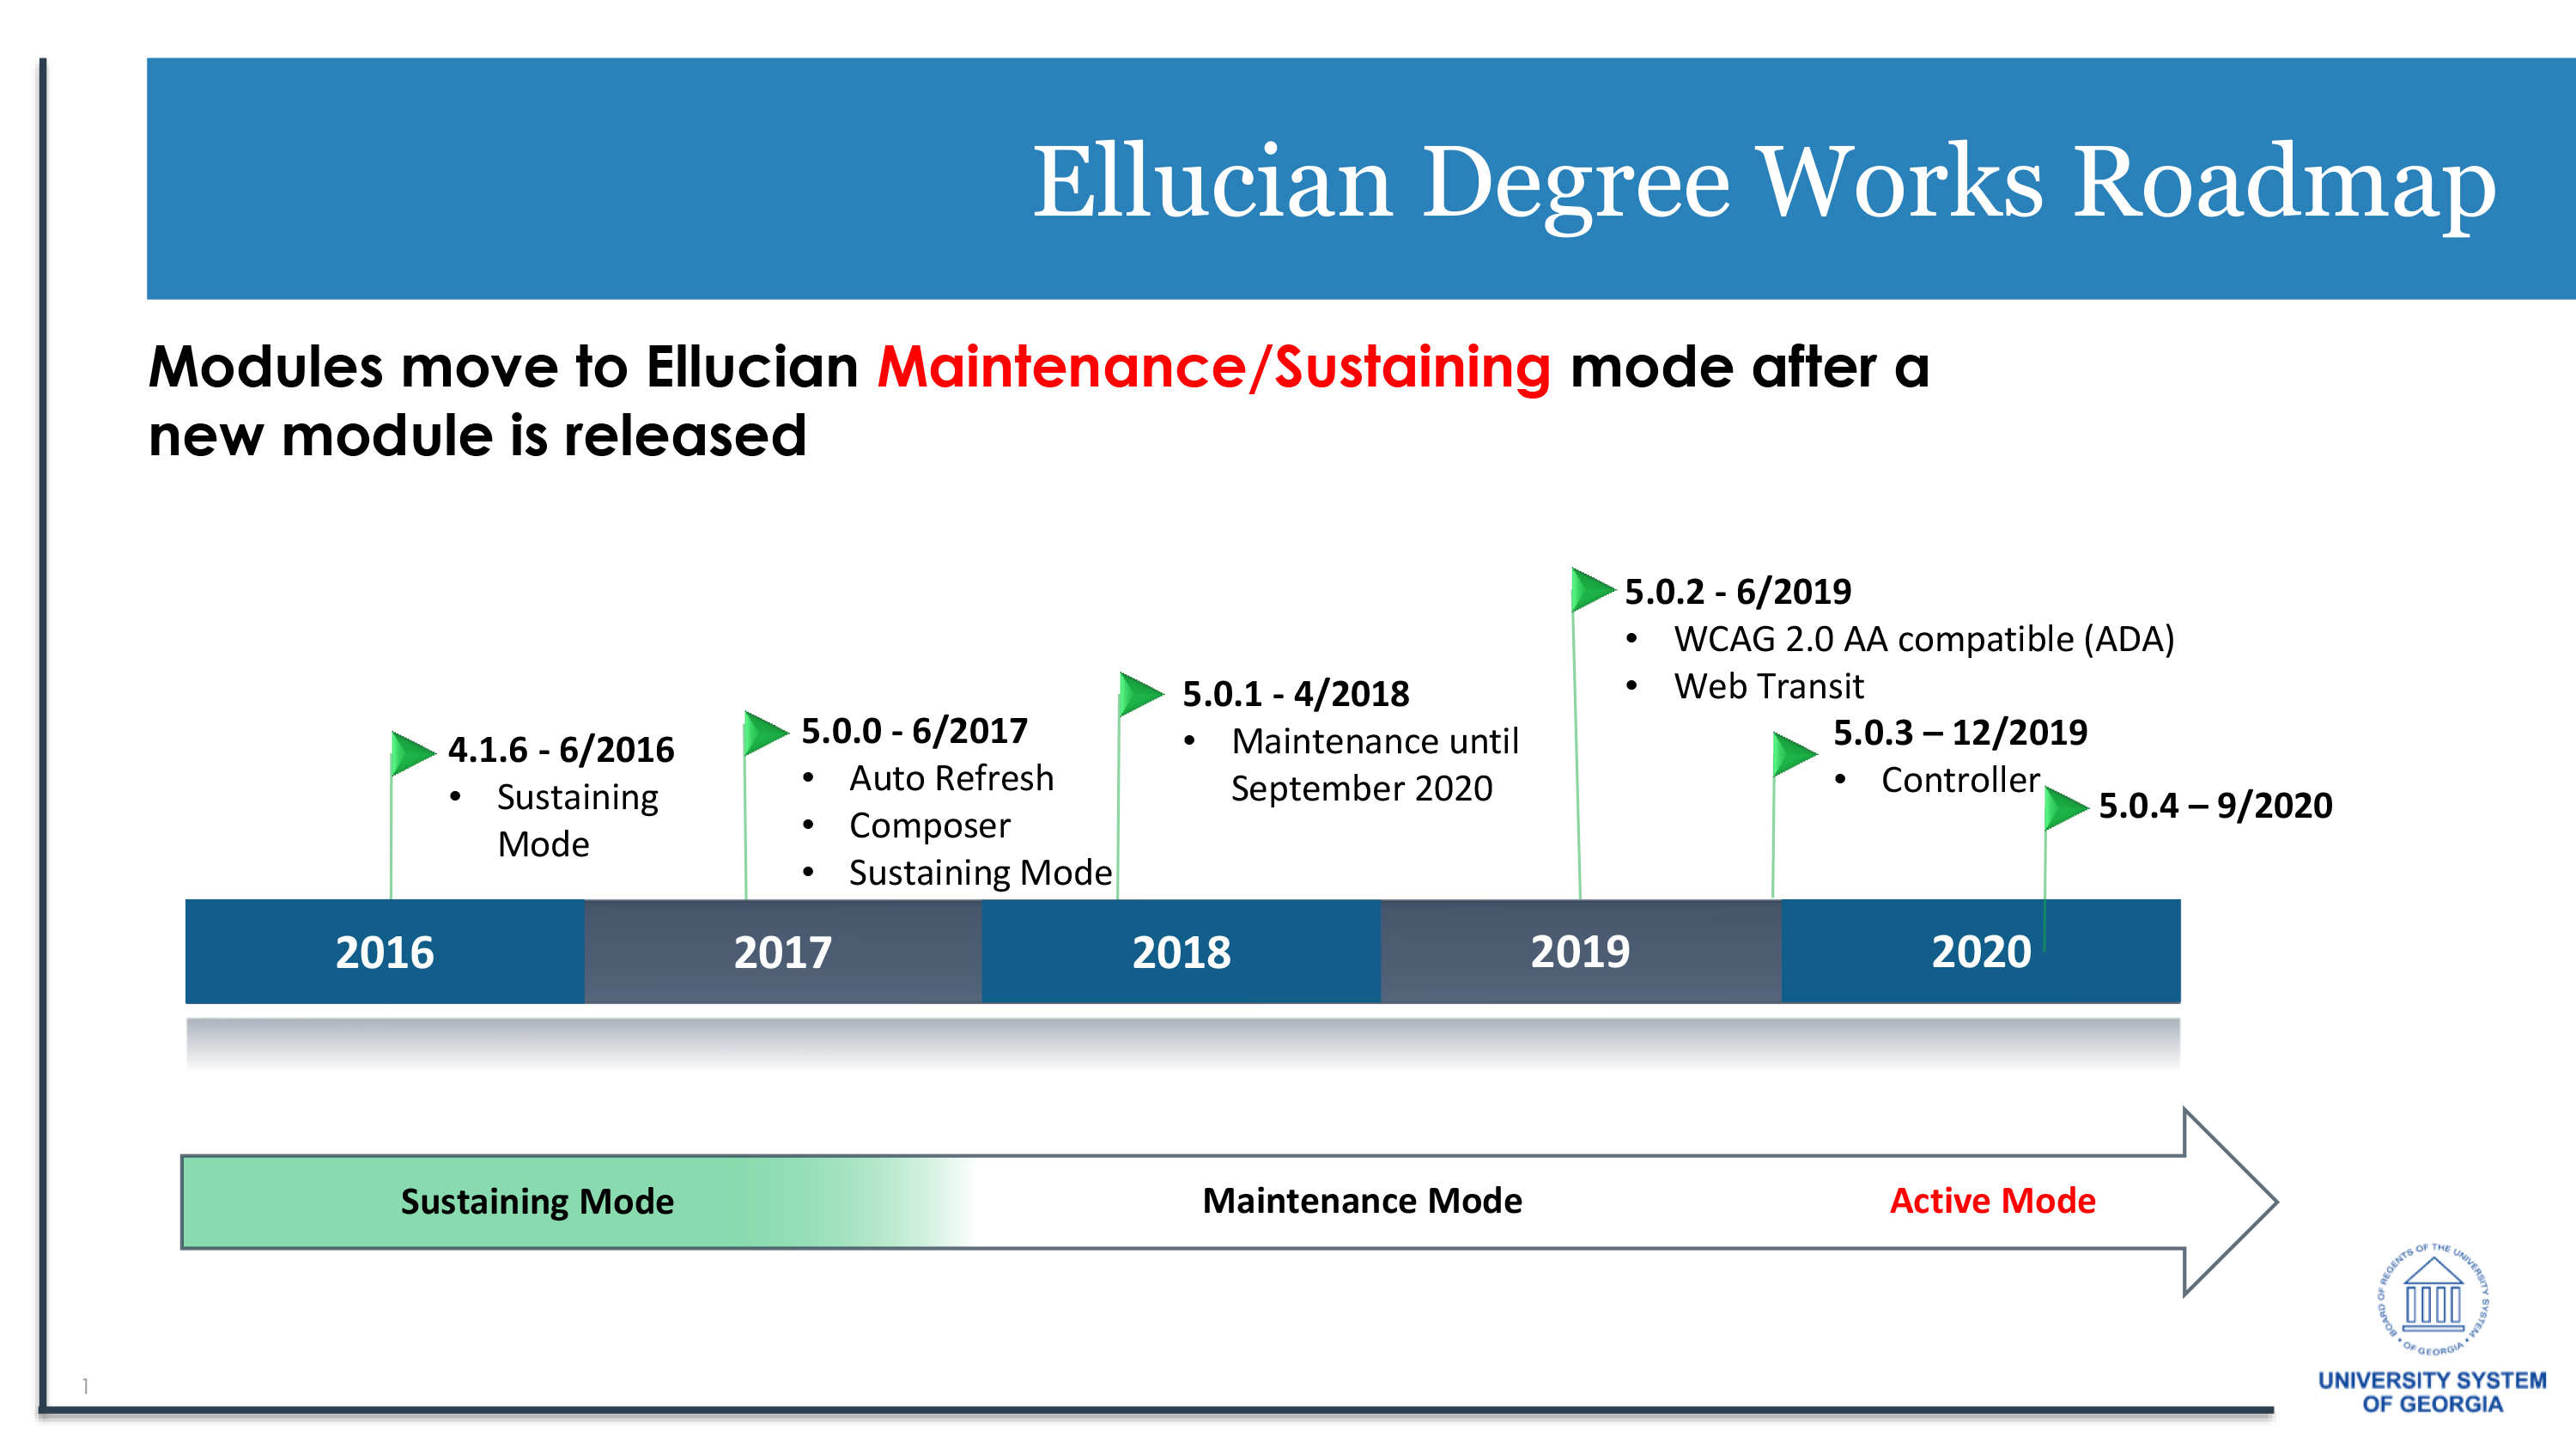 Picture depicts a timeline of the DegreeWorks software upgrade process